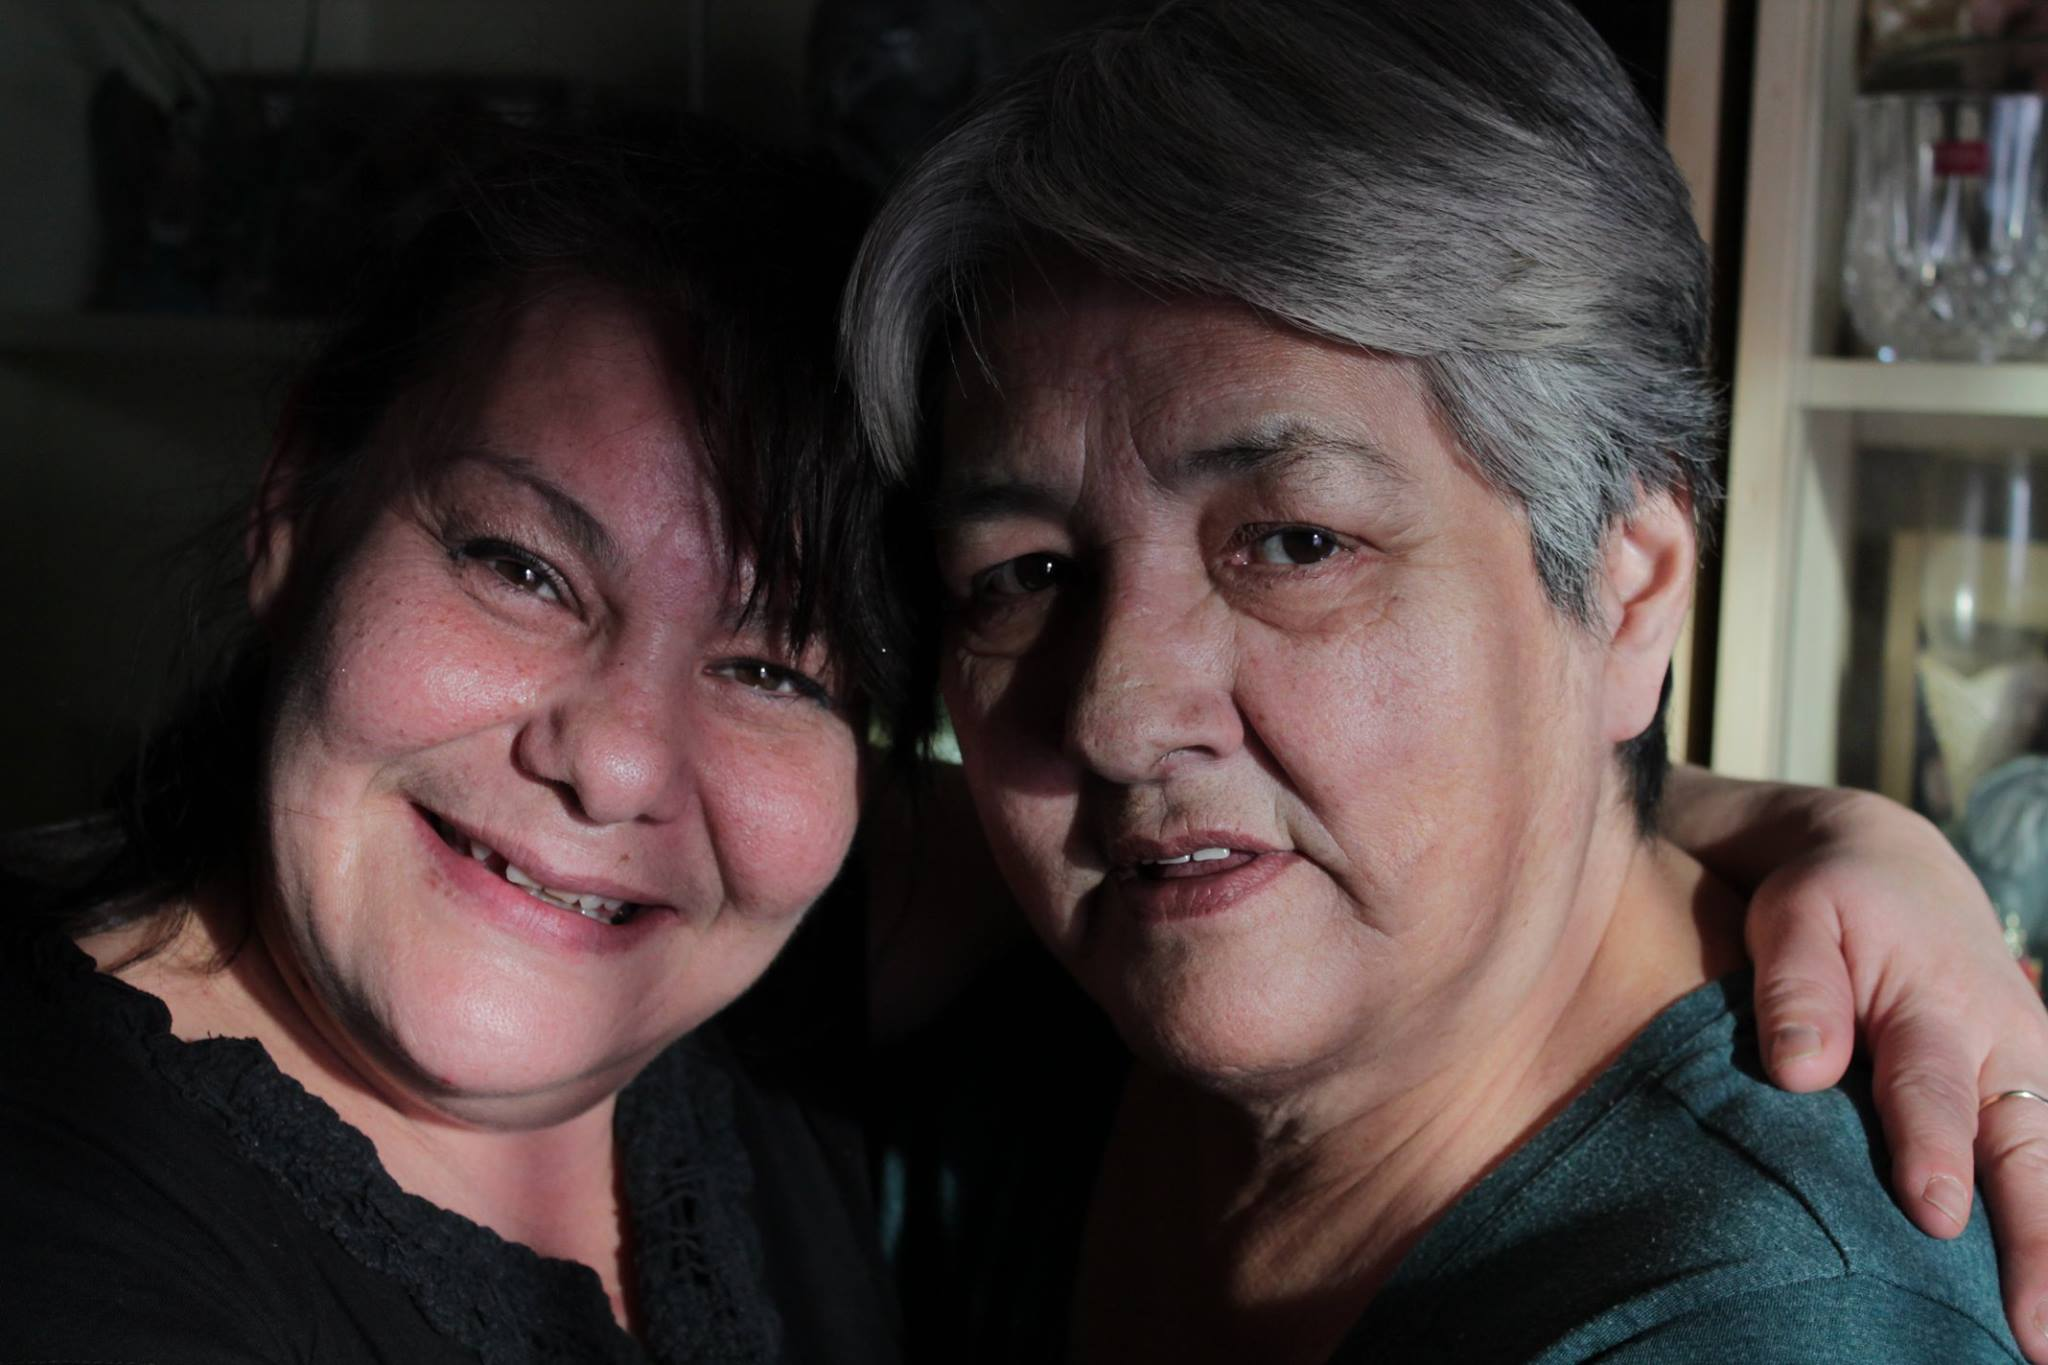 Two women, Kim and Thelma, stand close together arm in arm